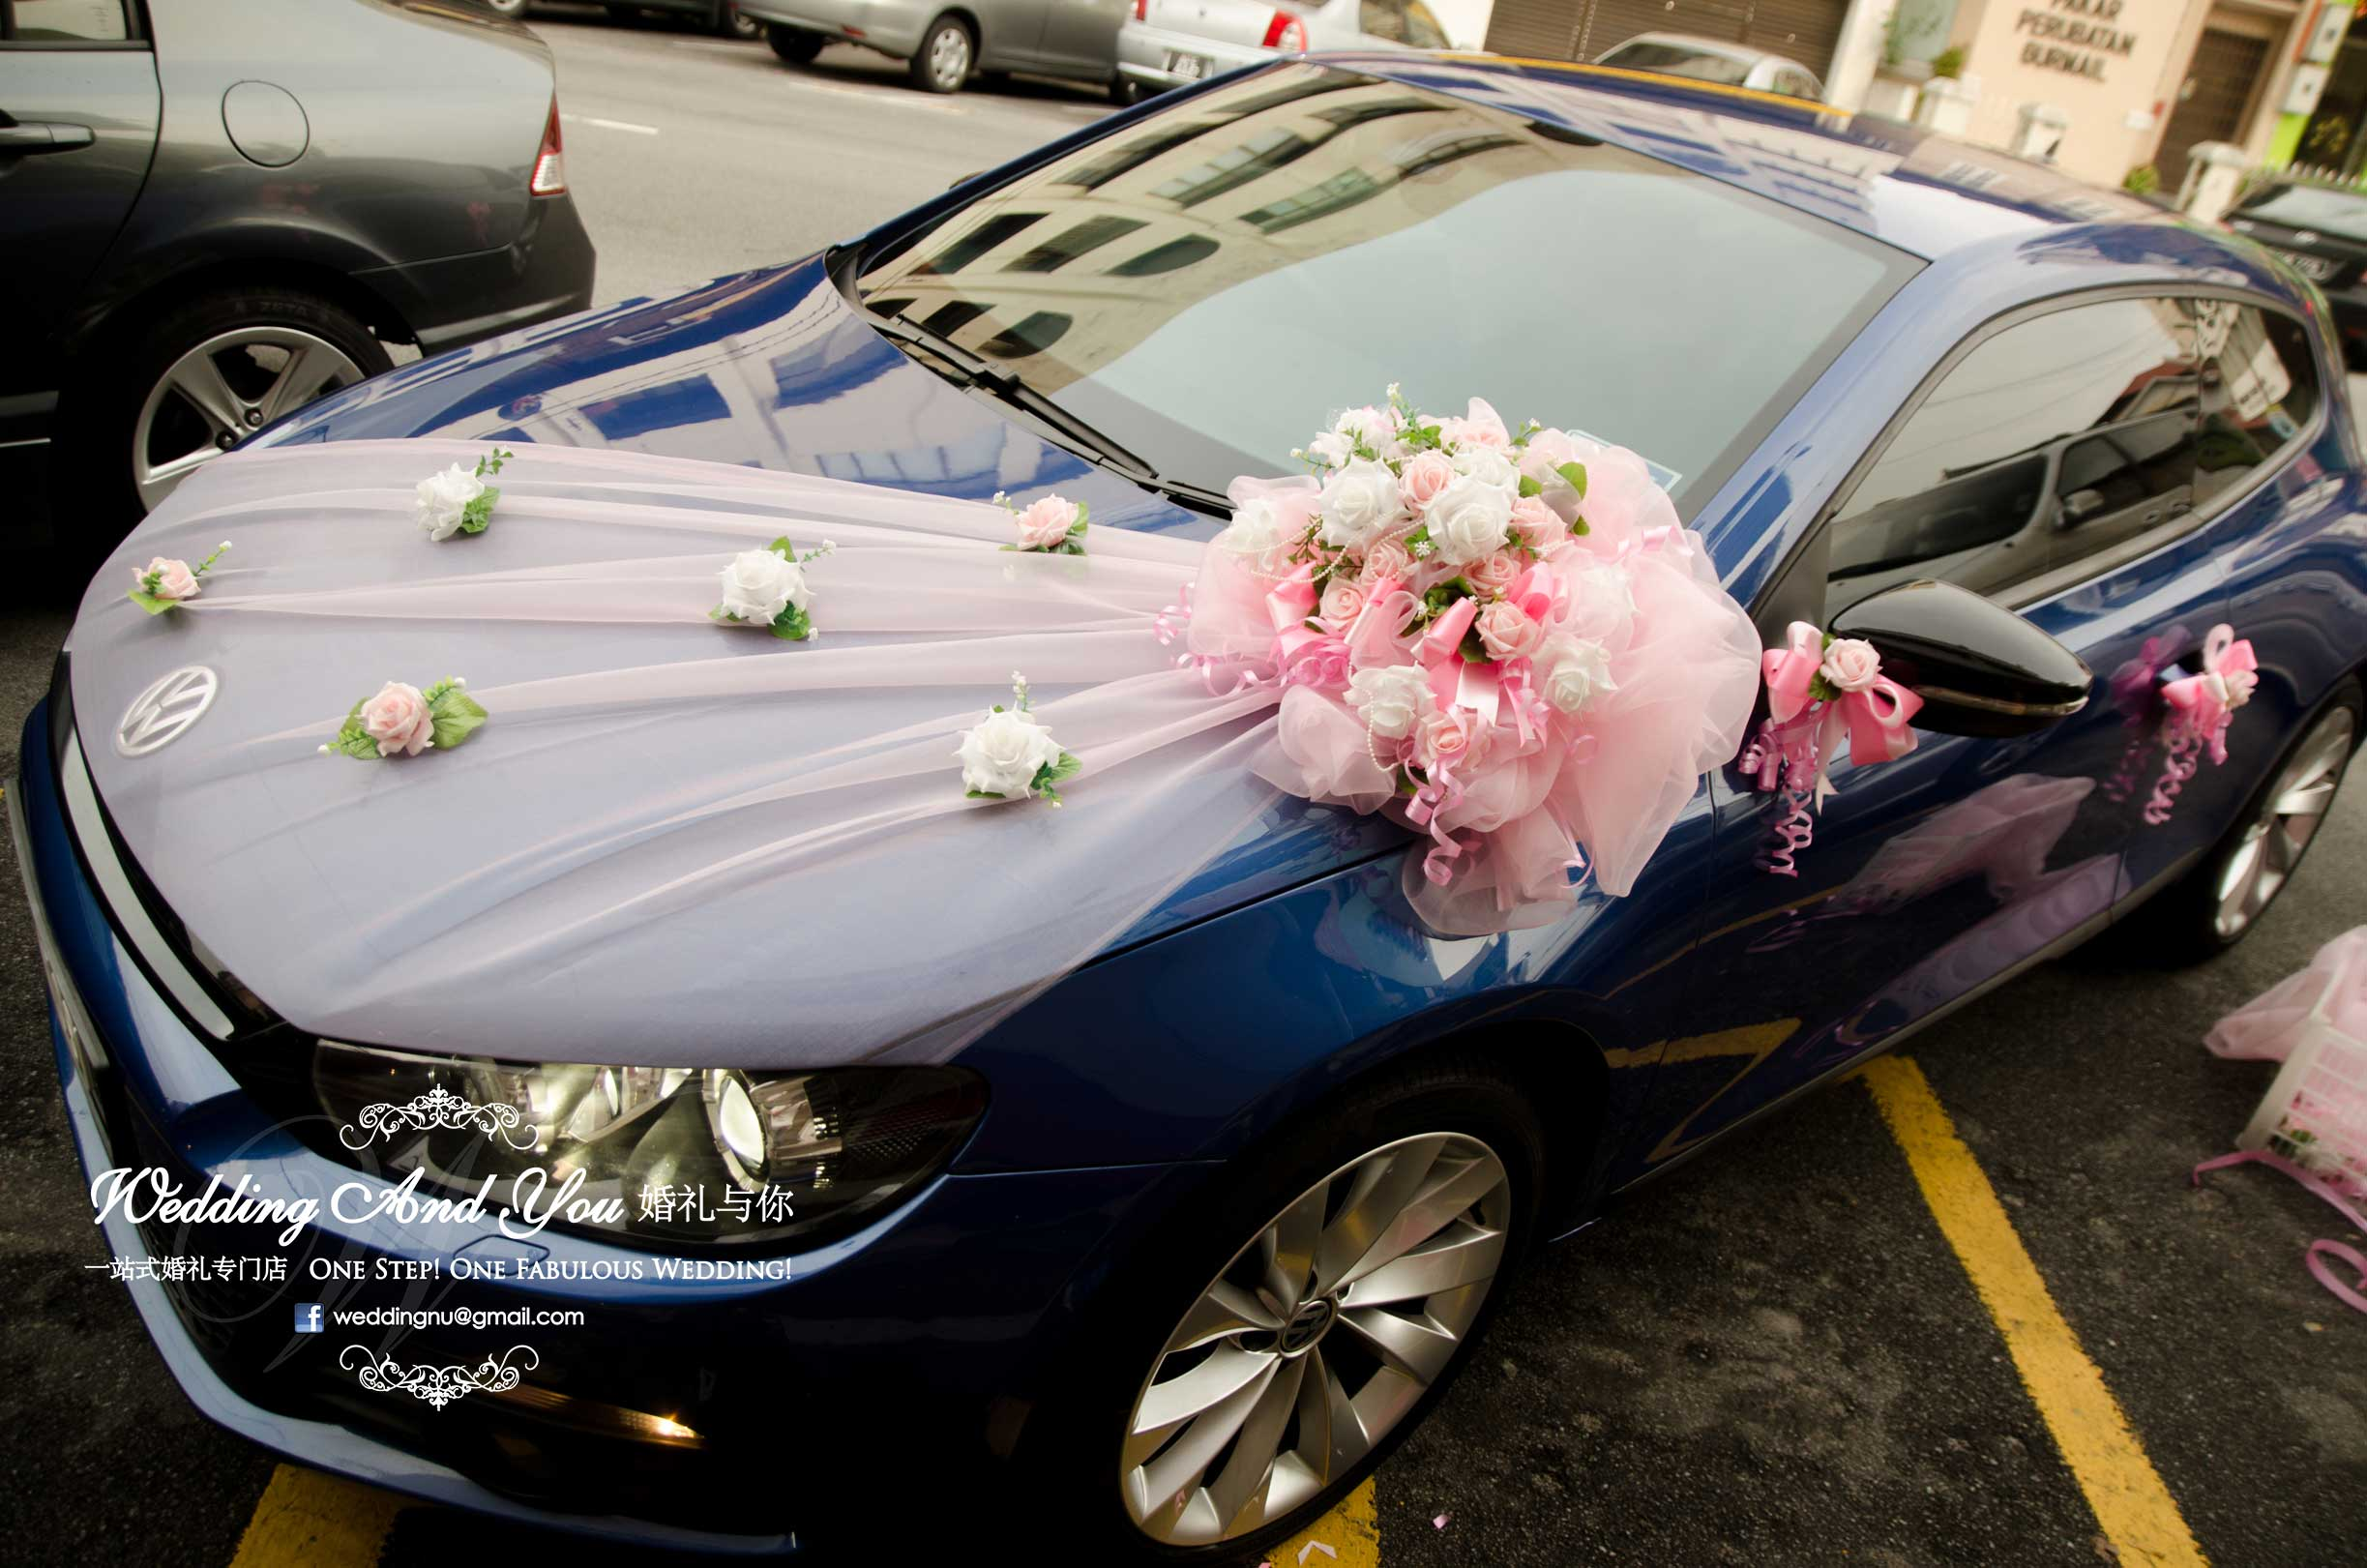 Wedding car decoration car wedding car decoration junglespirit